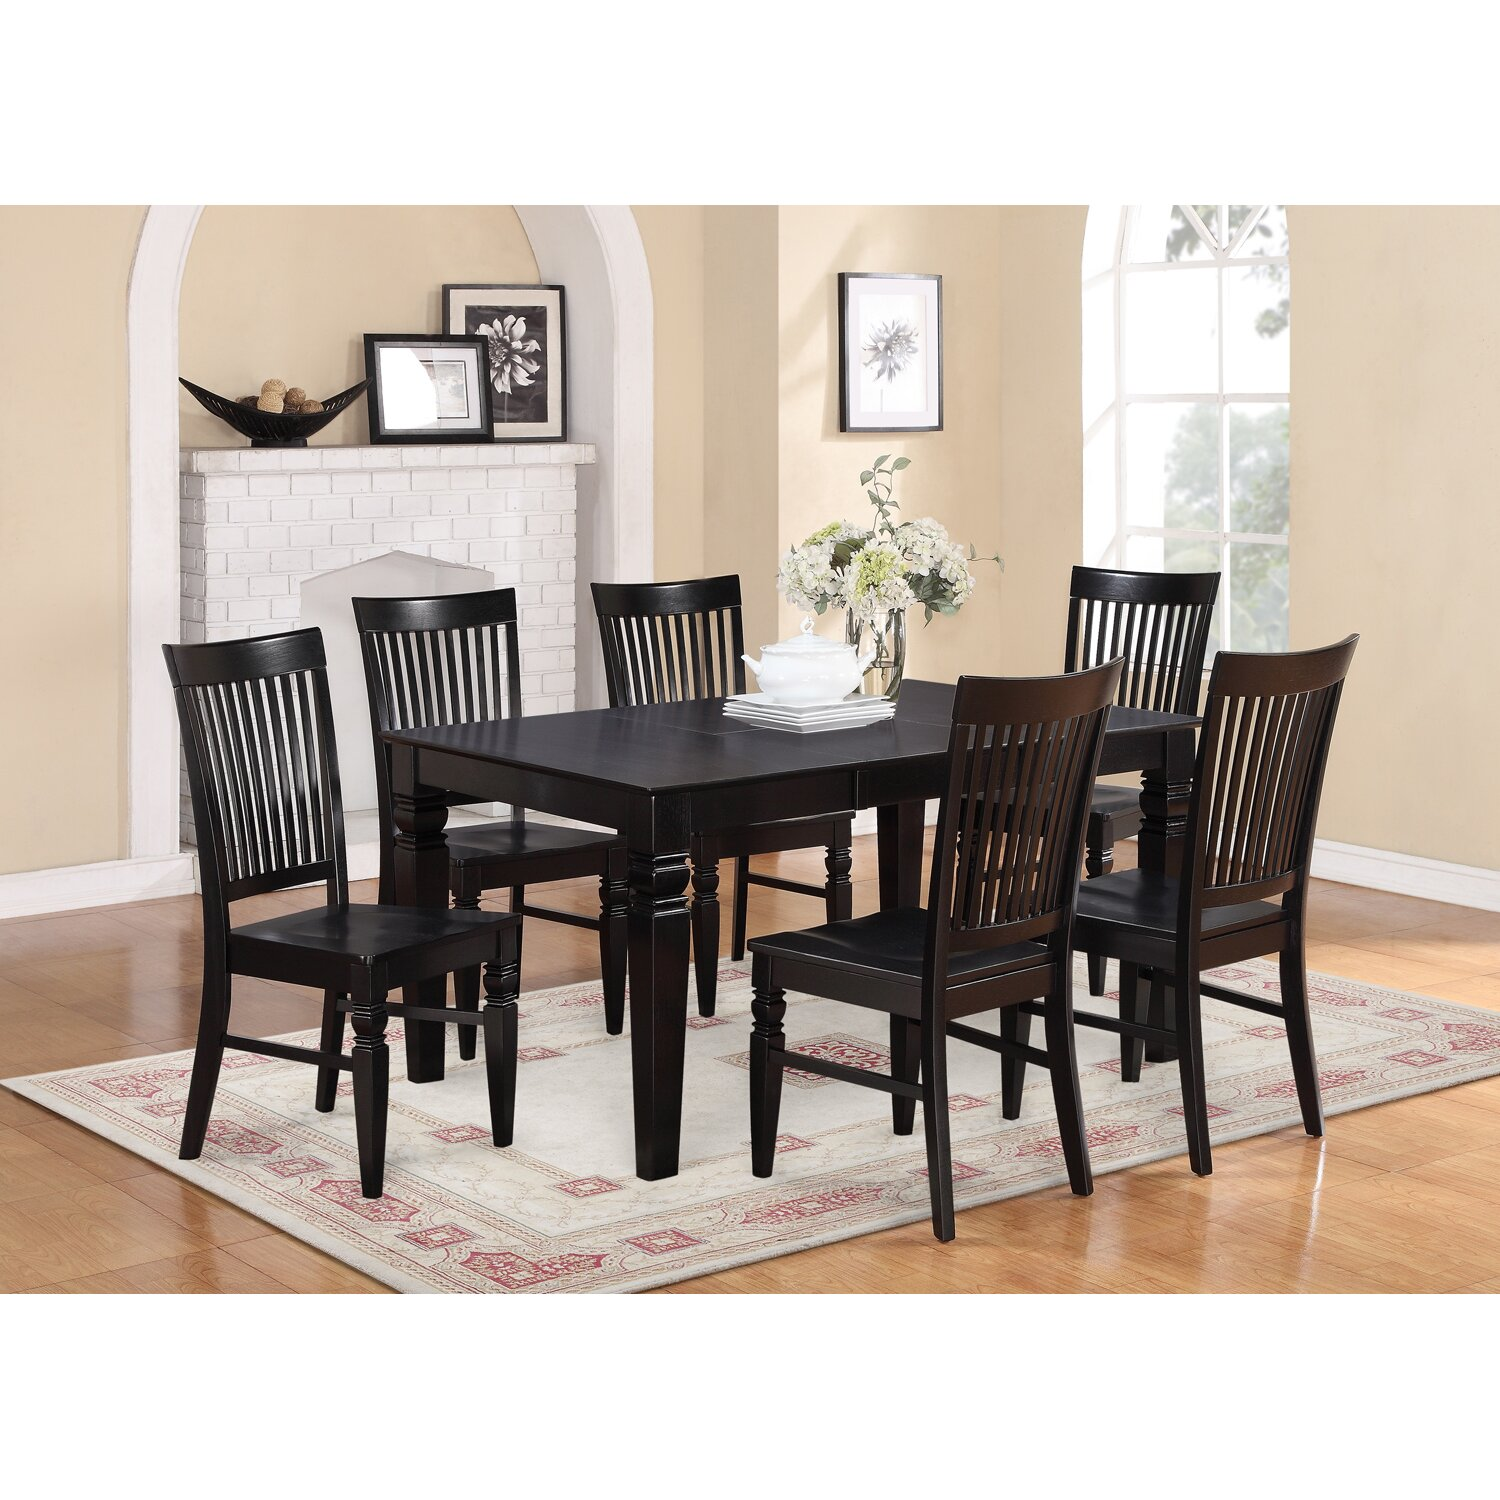 Dining Room Sets 5 Piece: Breakwater Bay Piermont 5 Piece Dining Set & Reviews